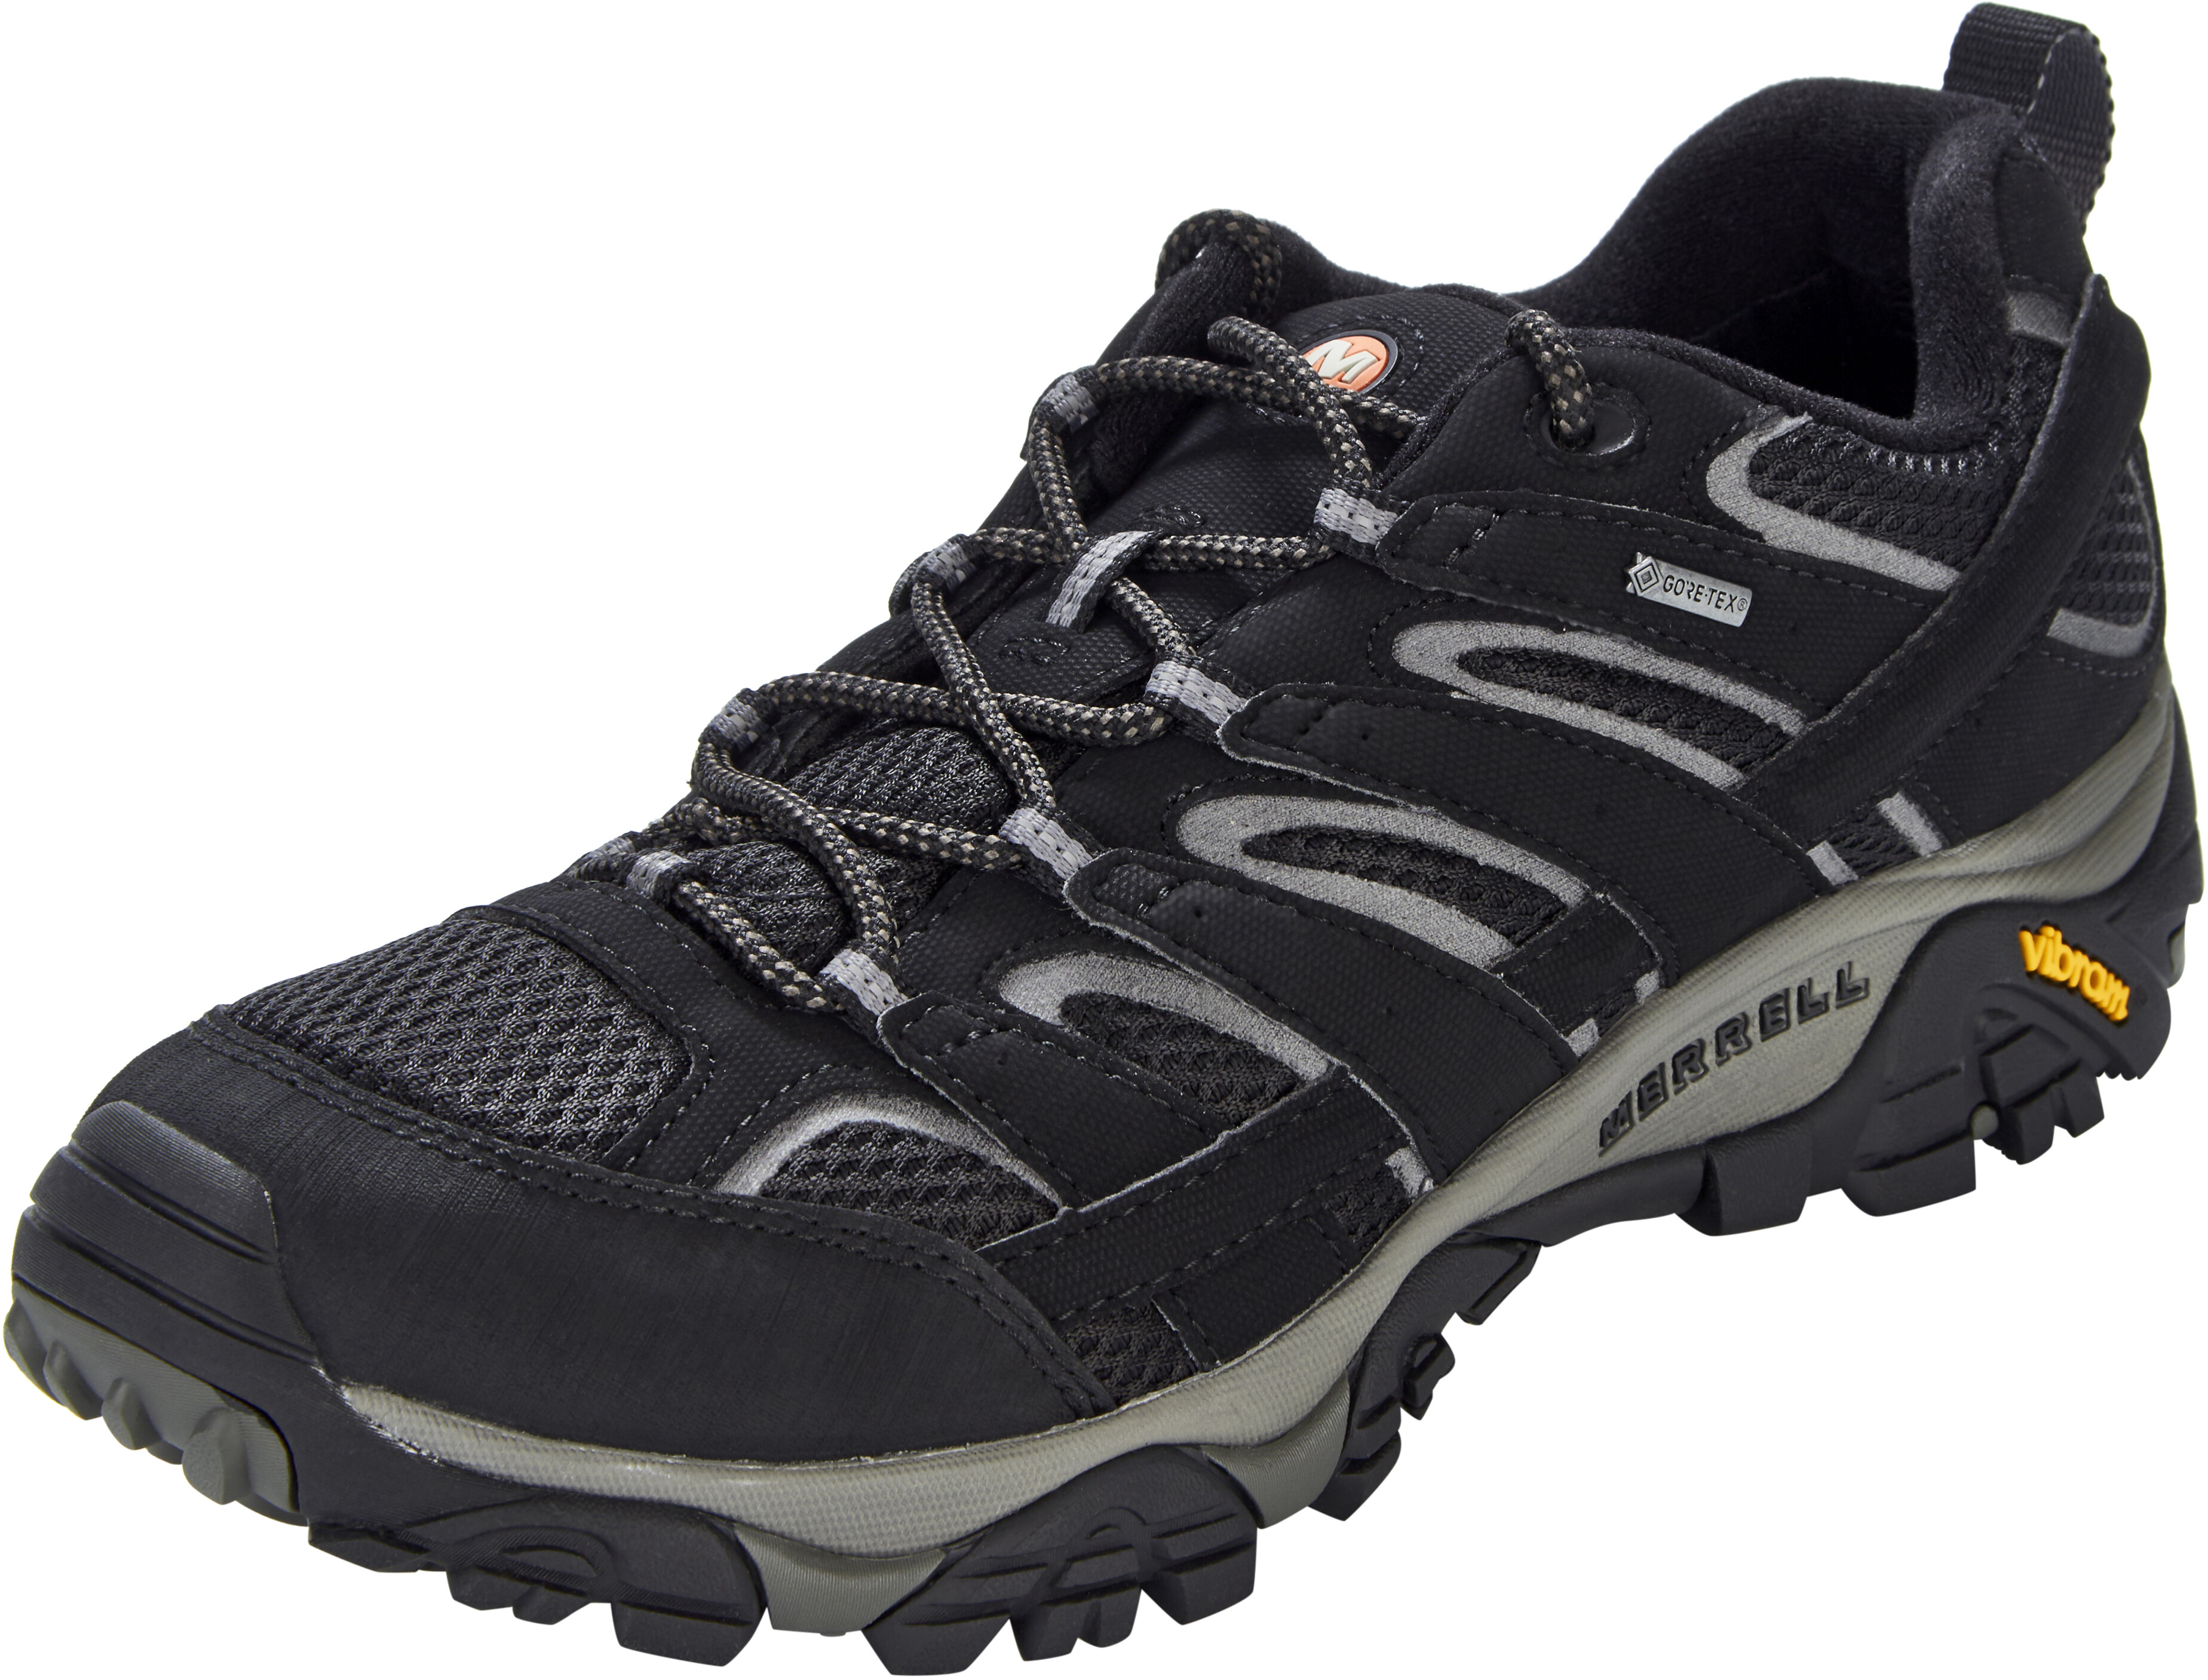 moins cher a4902 b34da Merrell Moab 2 GTX Shoes Men black